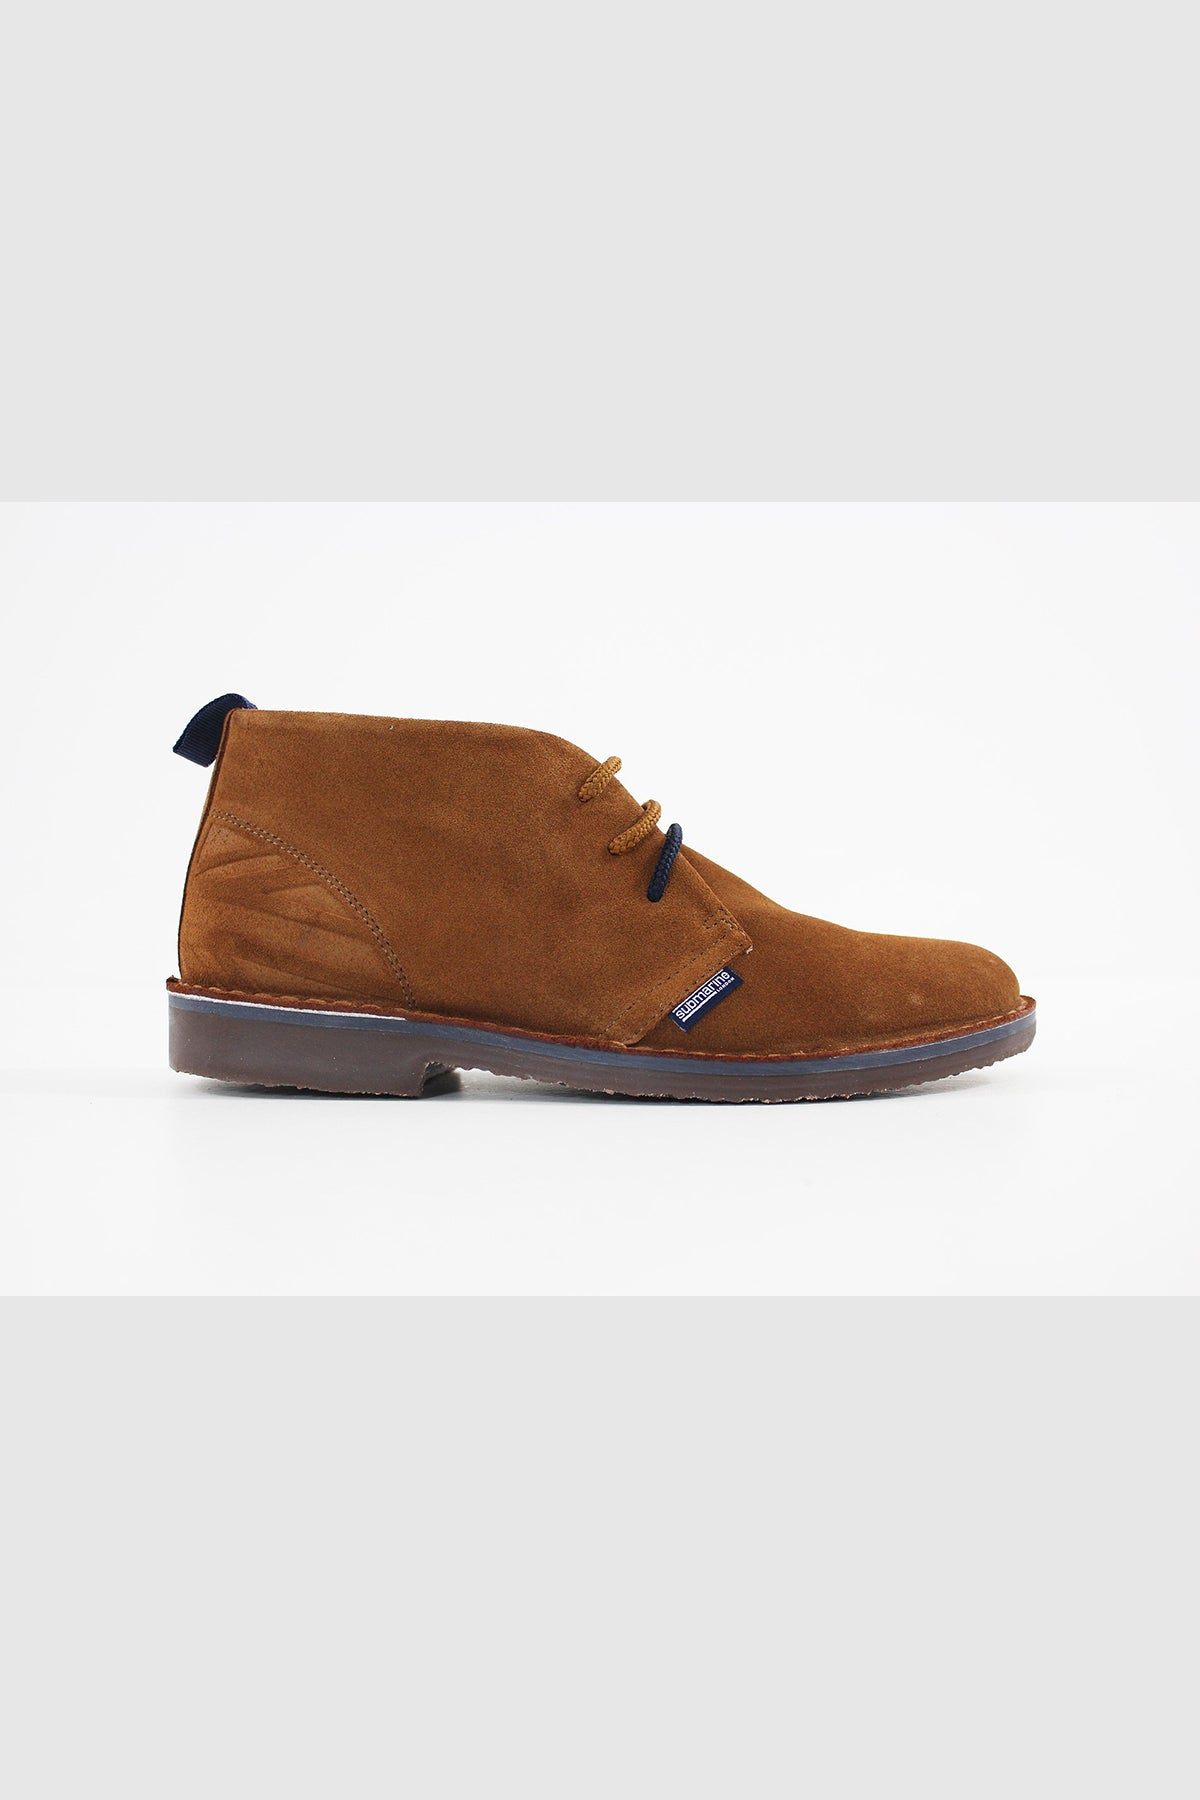 Submarine London NEW MANCHESTER SUEDE UNISEXCOGNAC-FLAG